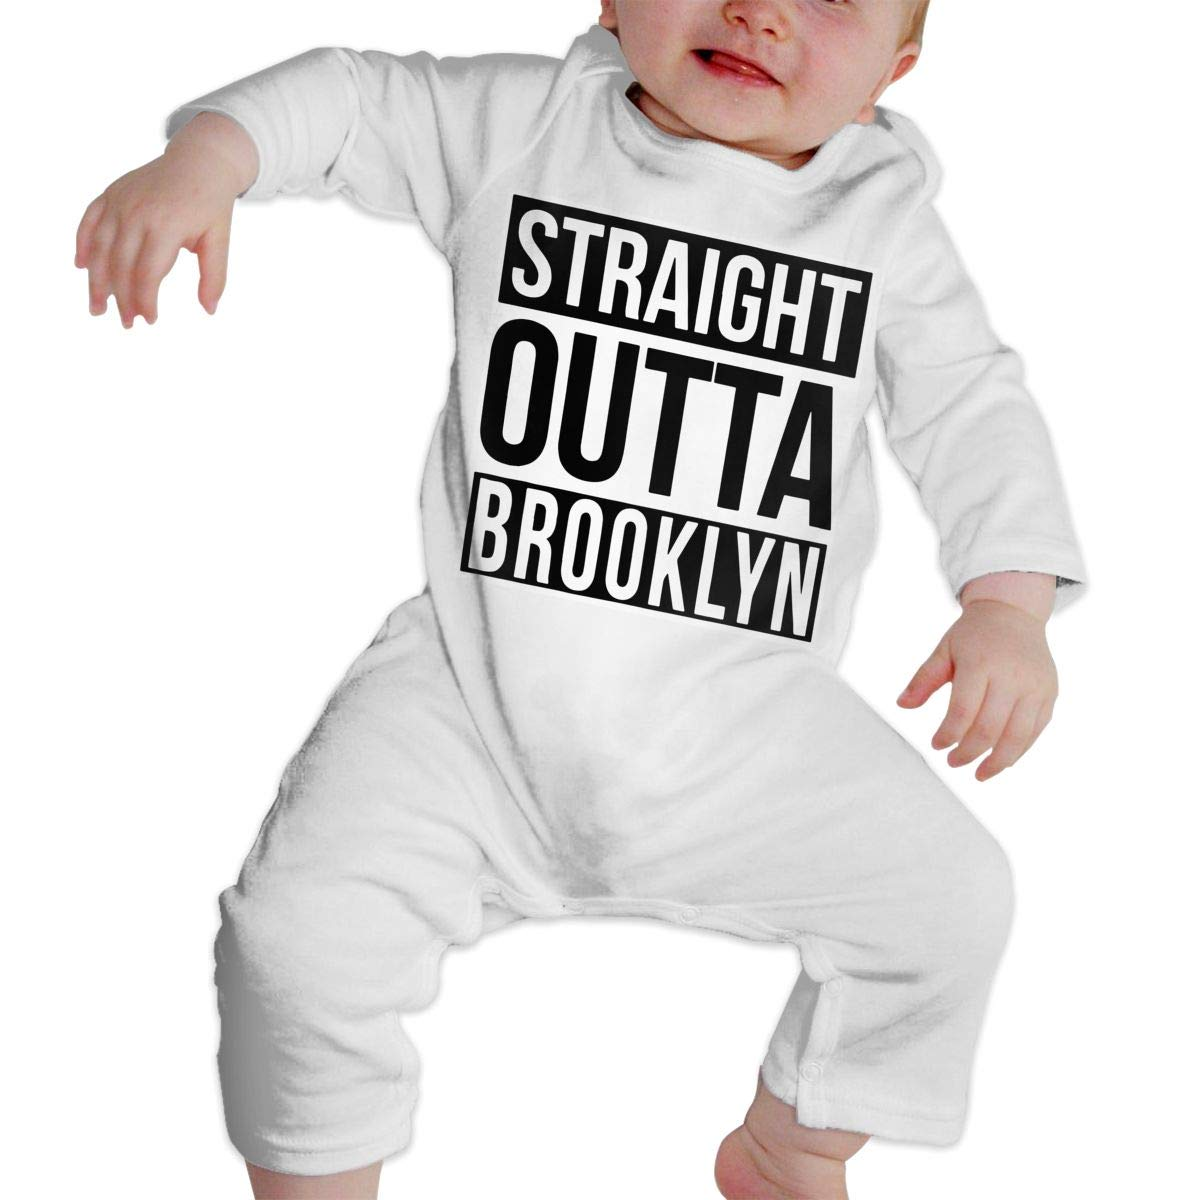 A1BY-5US Infant Baby Girls Cotton Long Sleeve Straight Outta Brooklyn Baby Clothes One-Piece Romper Clothes